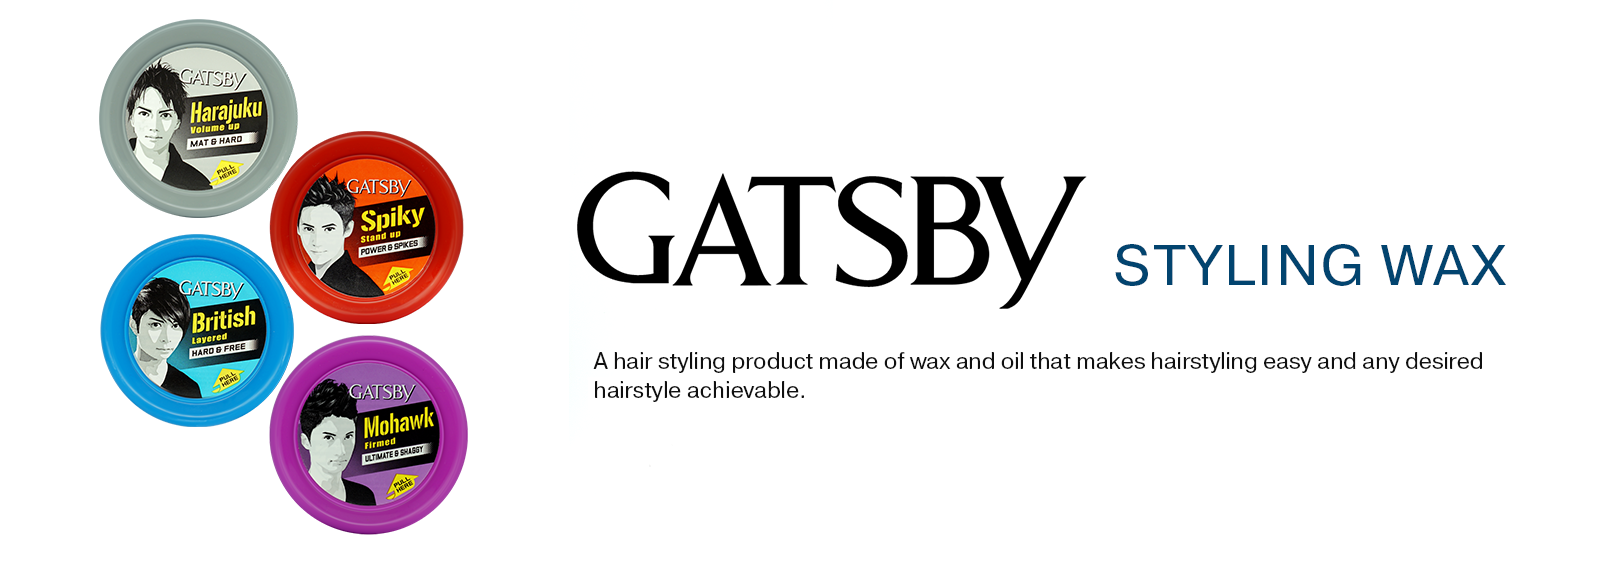 GATSBY Styling Wax Banner